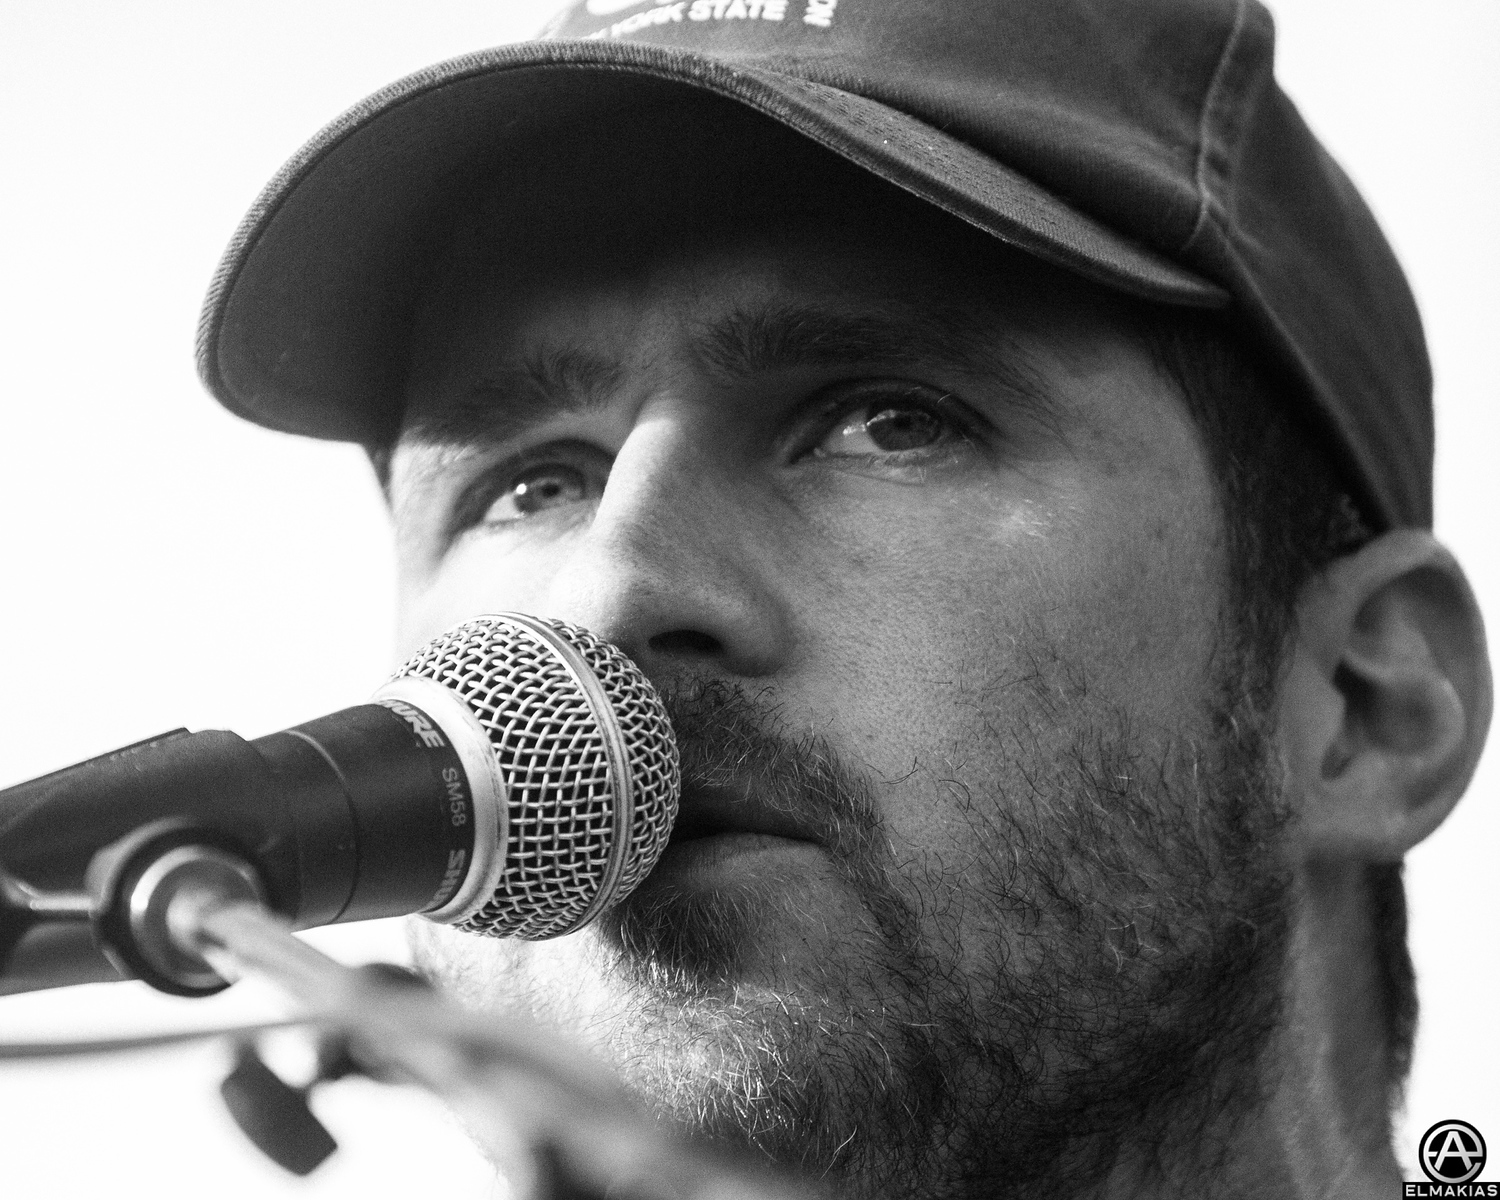 Onstage Portrait - Jesse Lacey of Brand New